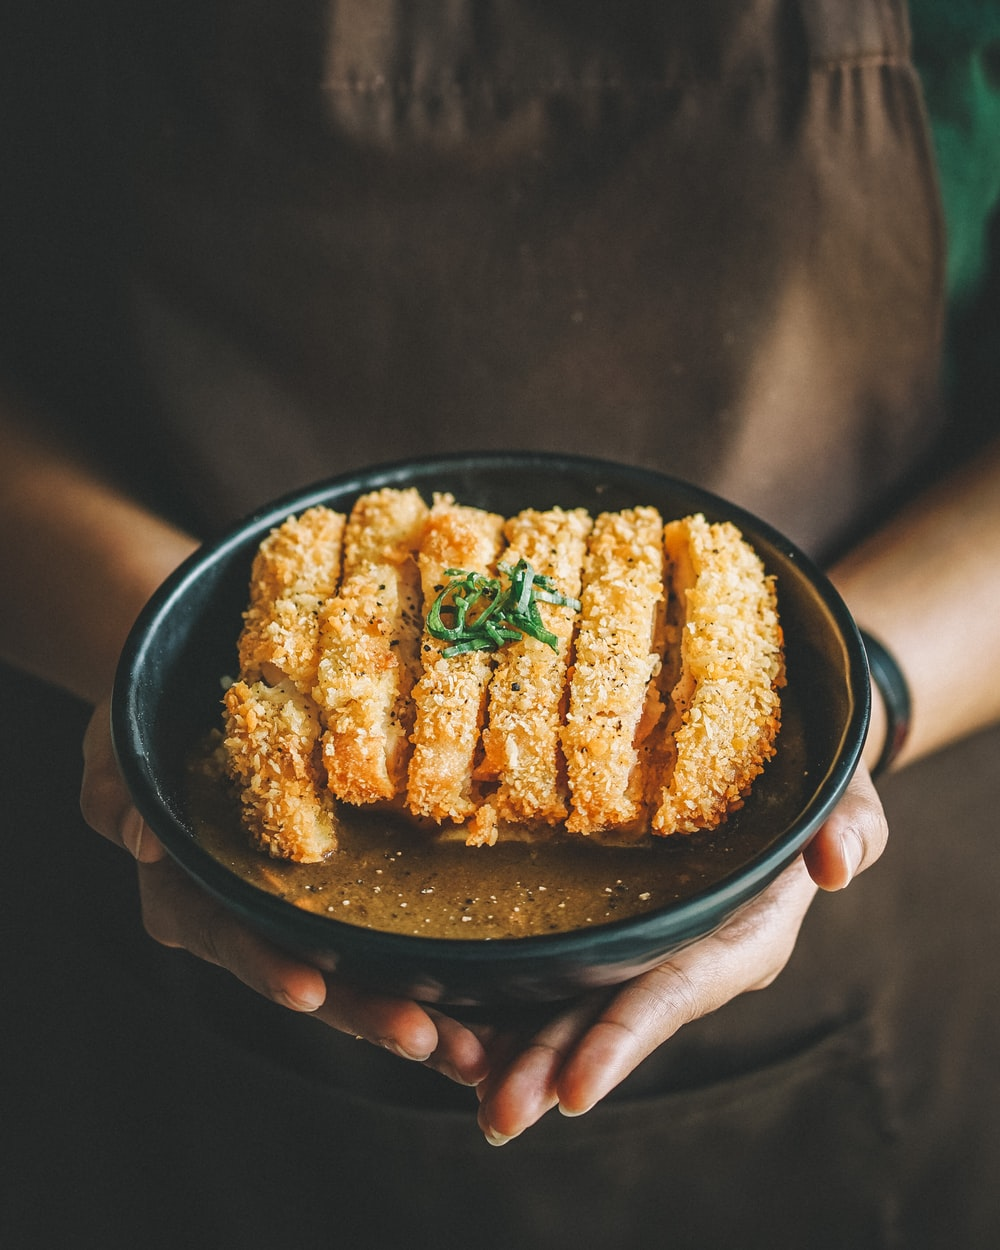 fried dish on round black plate